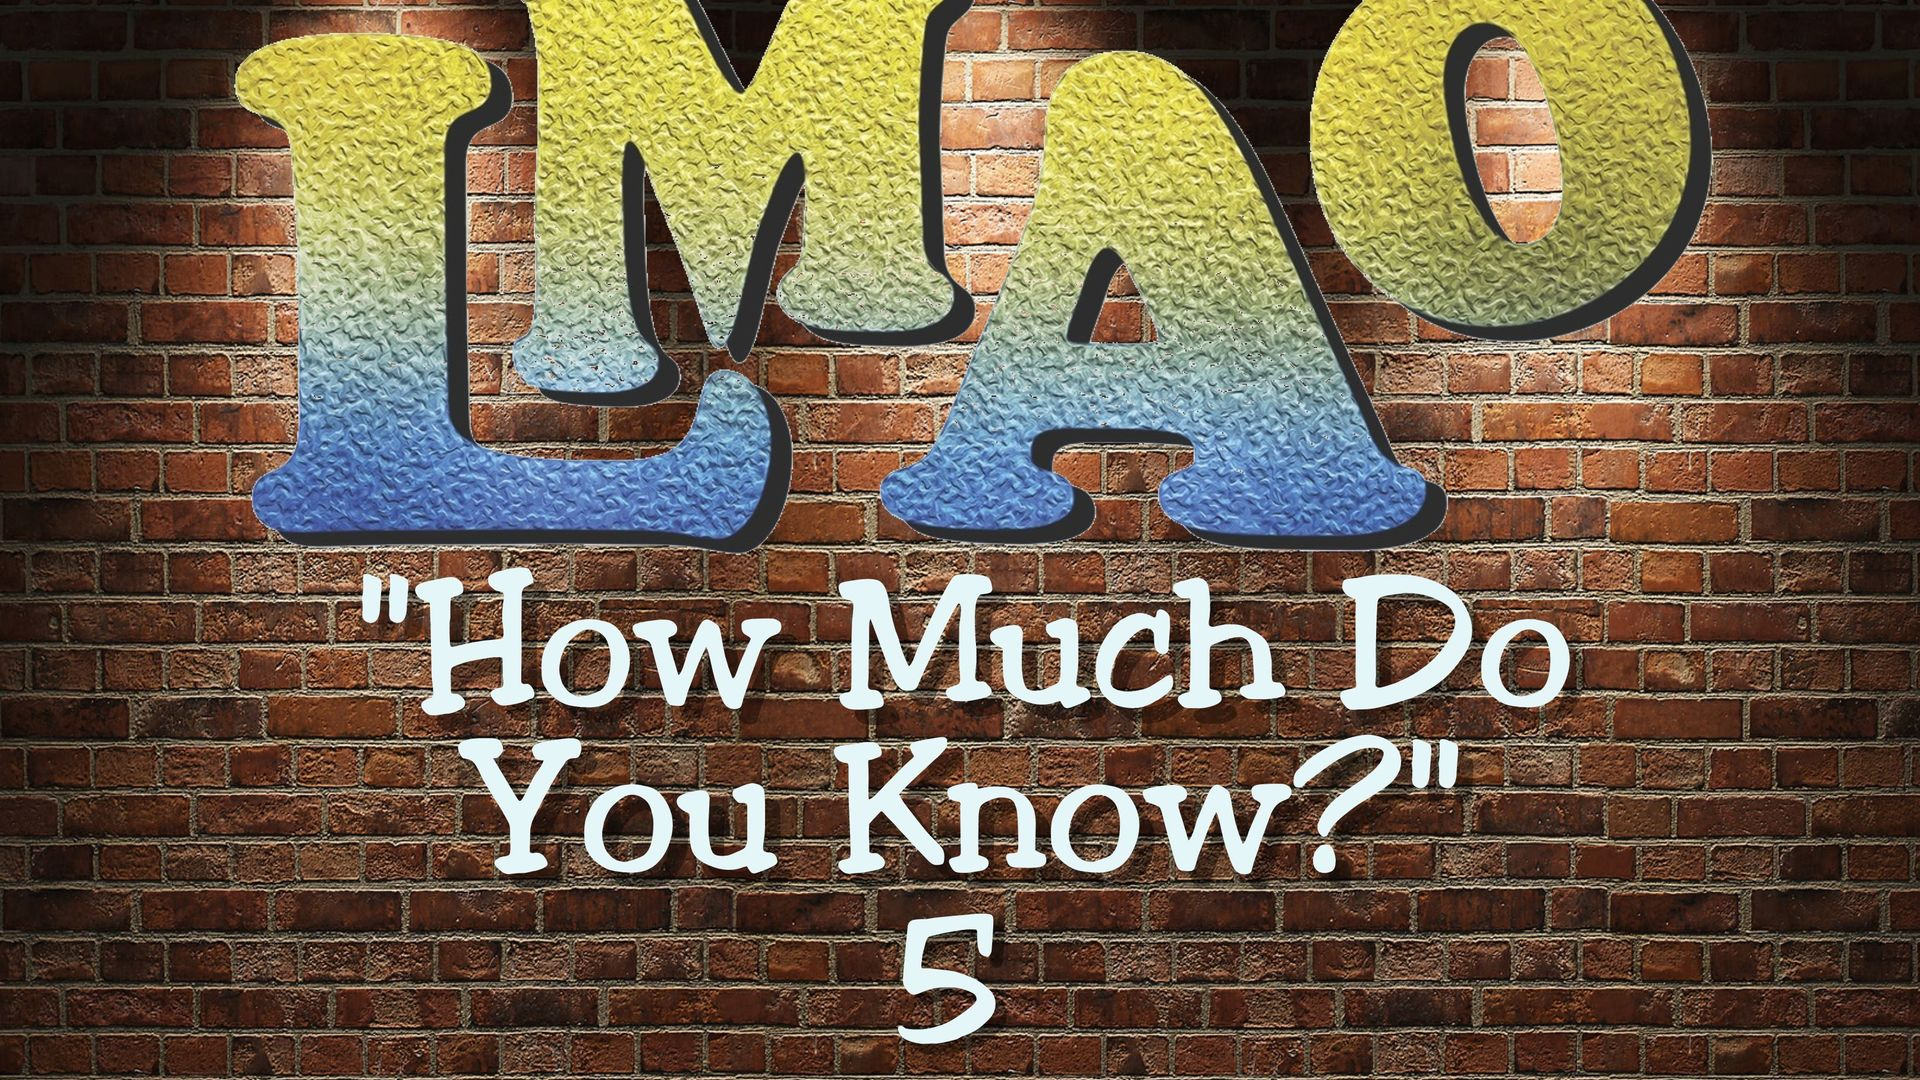 LMAO - How much do YOU know? 5